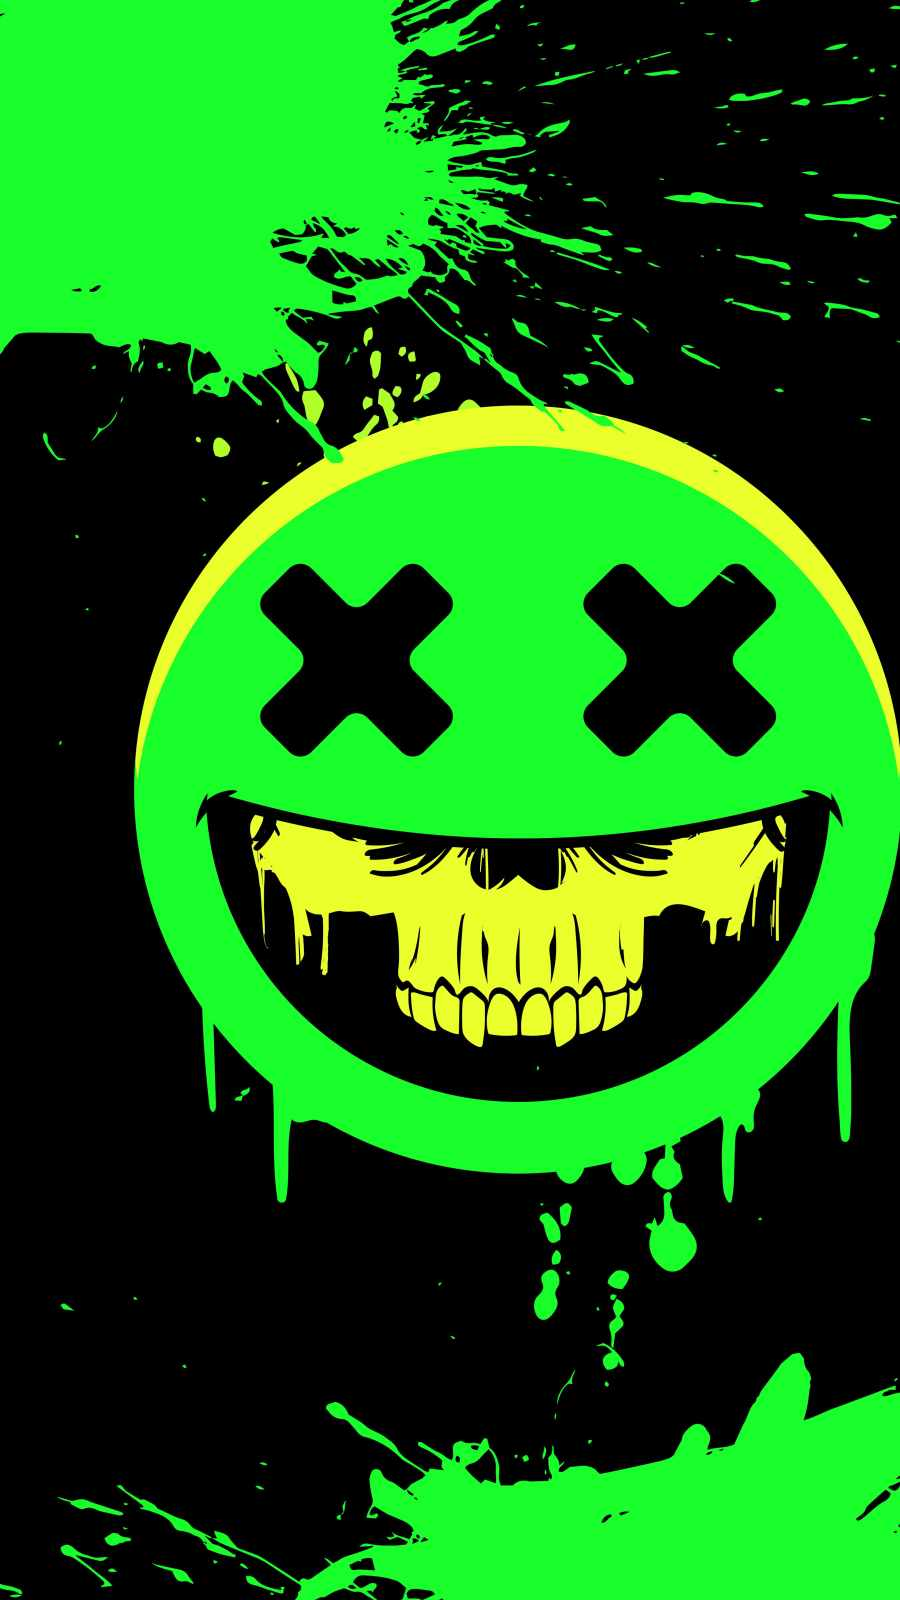 Deadly Smile iPhone Wallpaper